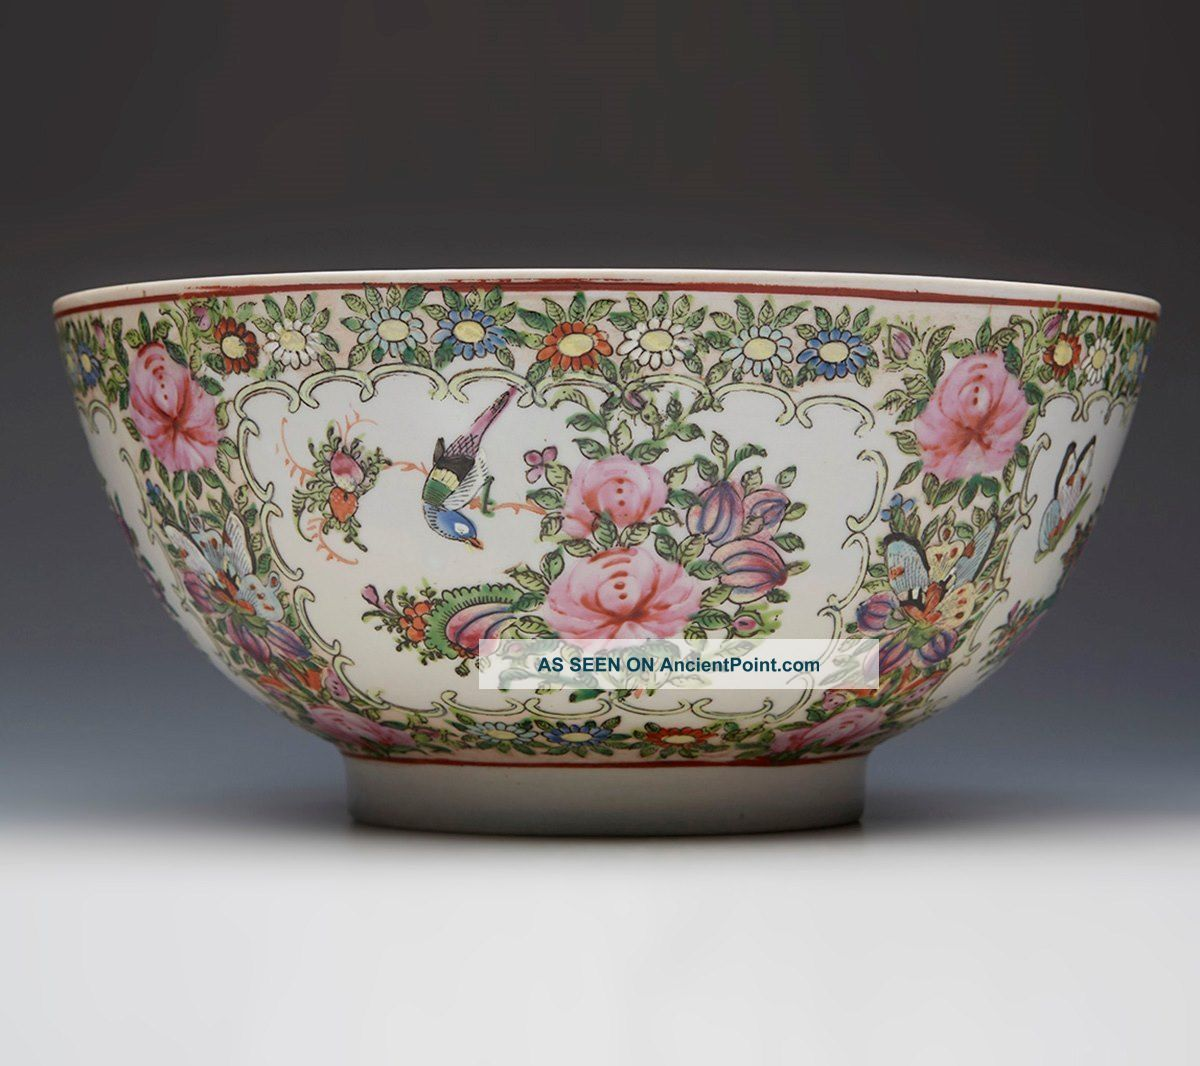 Antique Chinese Famille Rose Bowl Xianfeng Mark 19th/20th Century Bowls photo